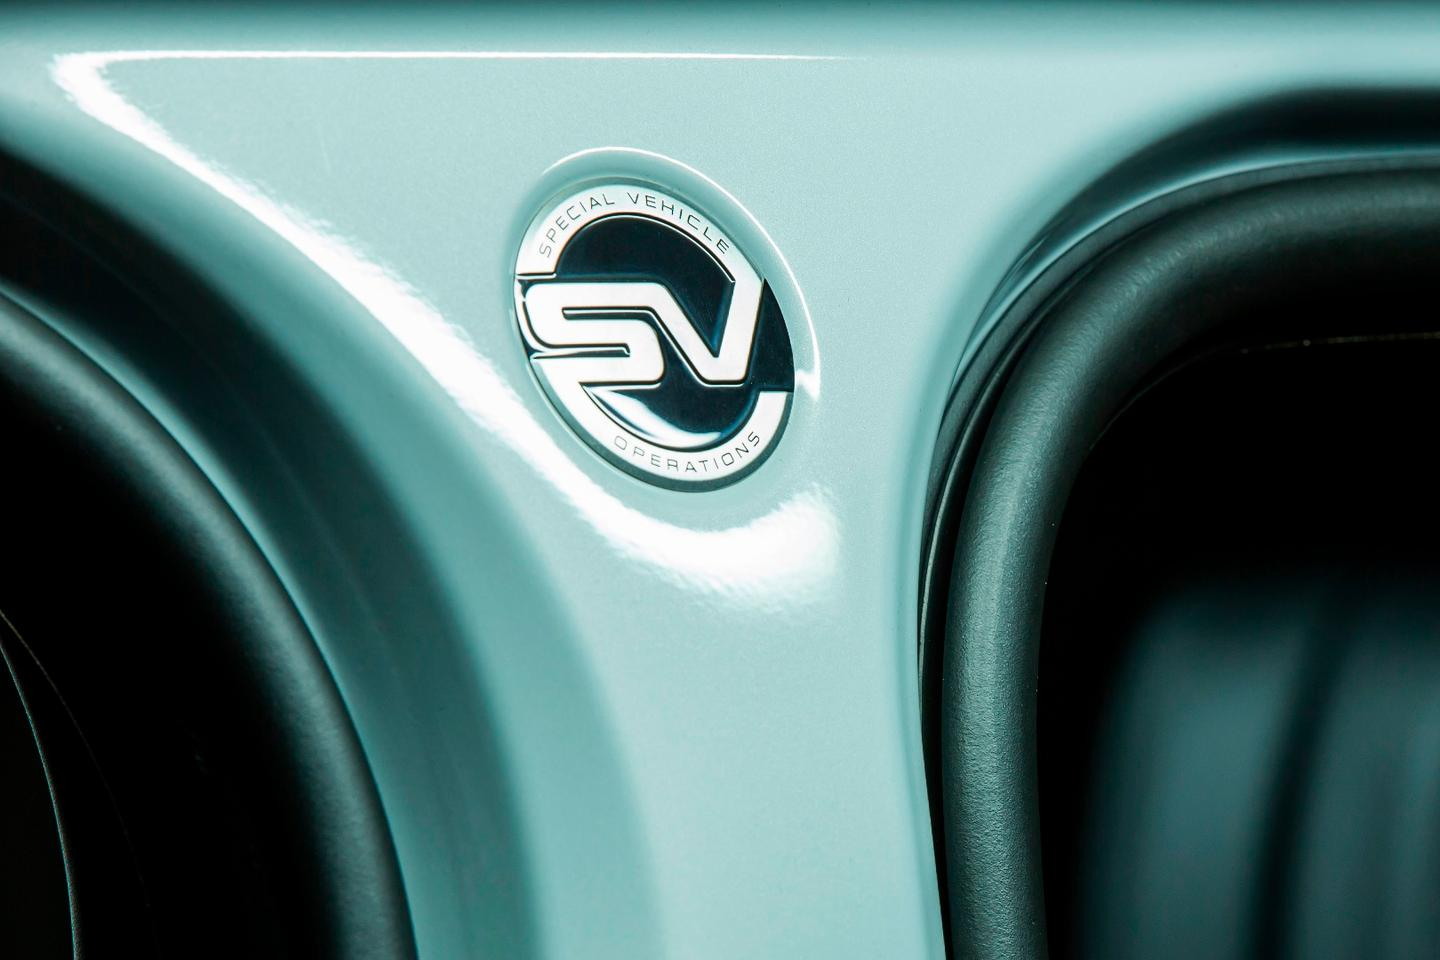 Land Rover has handed the SVAutobiography over to the SVOdivision